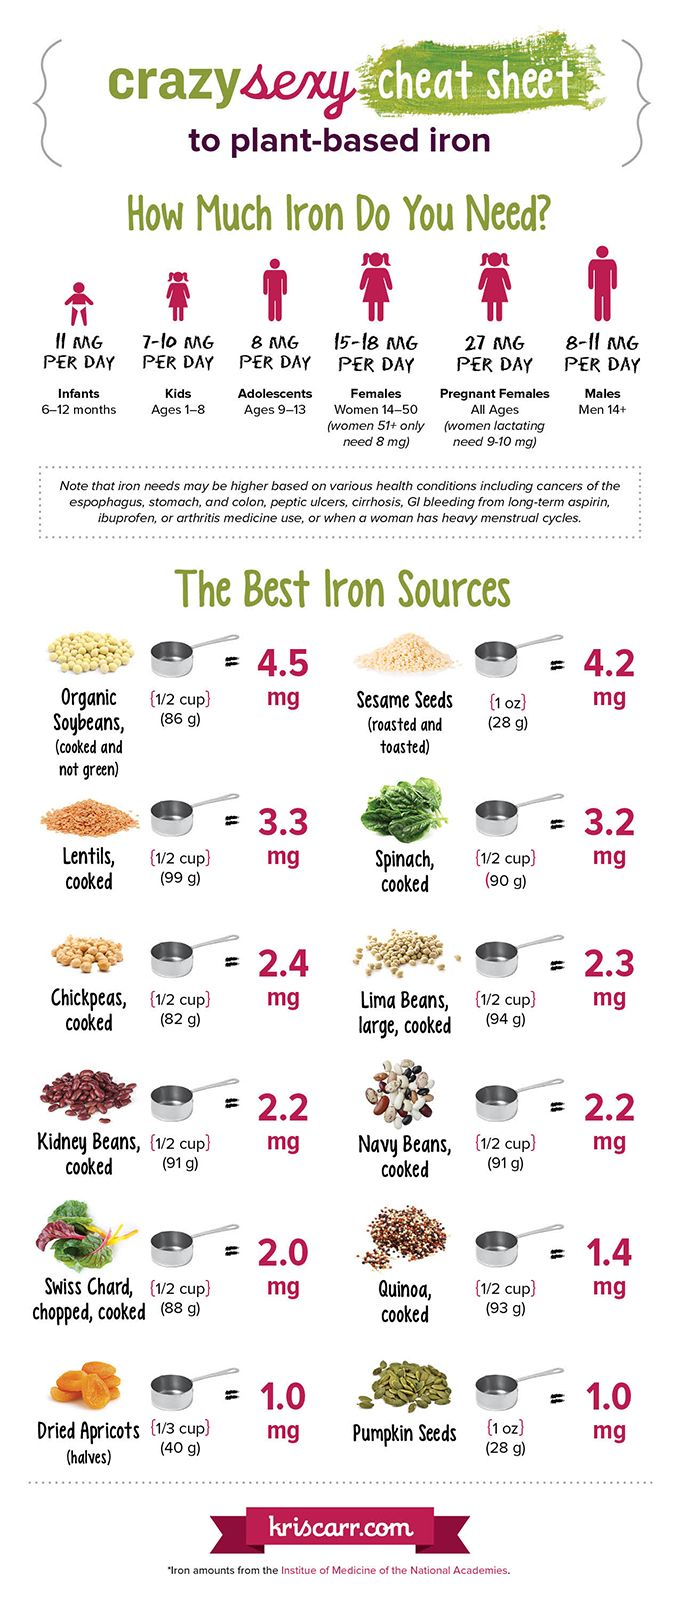 Why is iron important and what are the best plant-based iron-rich foods? Kris Carr shares the top 12 plant-based iron sources plus a handy iron infographic.